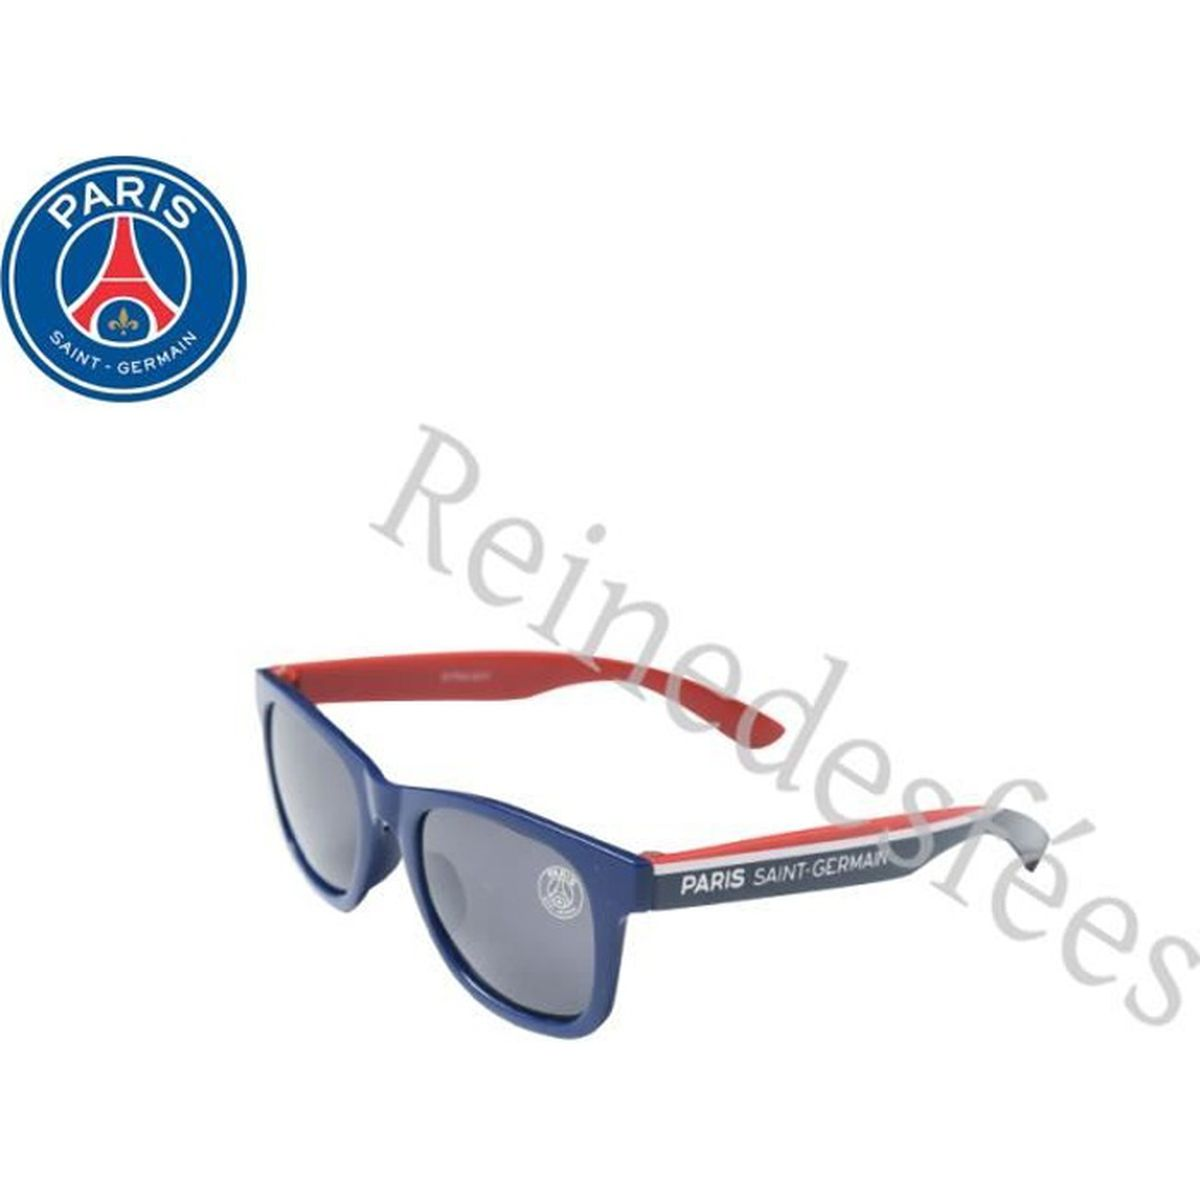 lunette de soleil enfants du paris saint germain uv 400 gar ons filles 3 6 ans psg foot. Black Bedroom Furniture Sets. Home Design Ideas